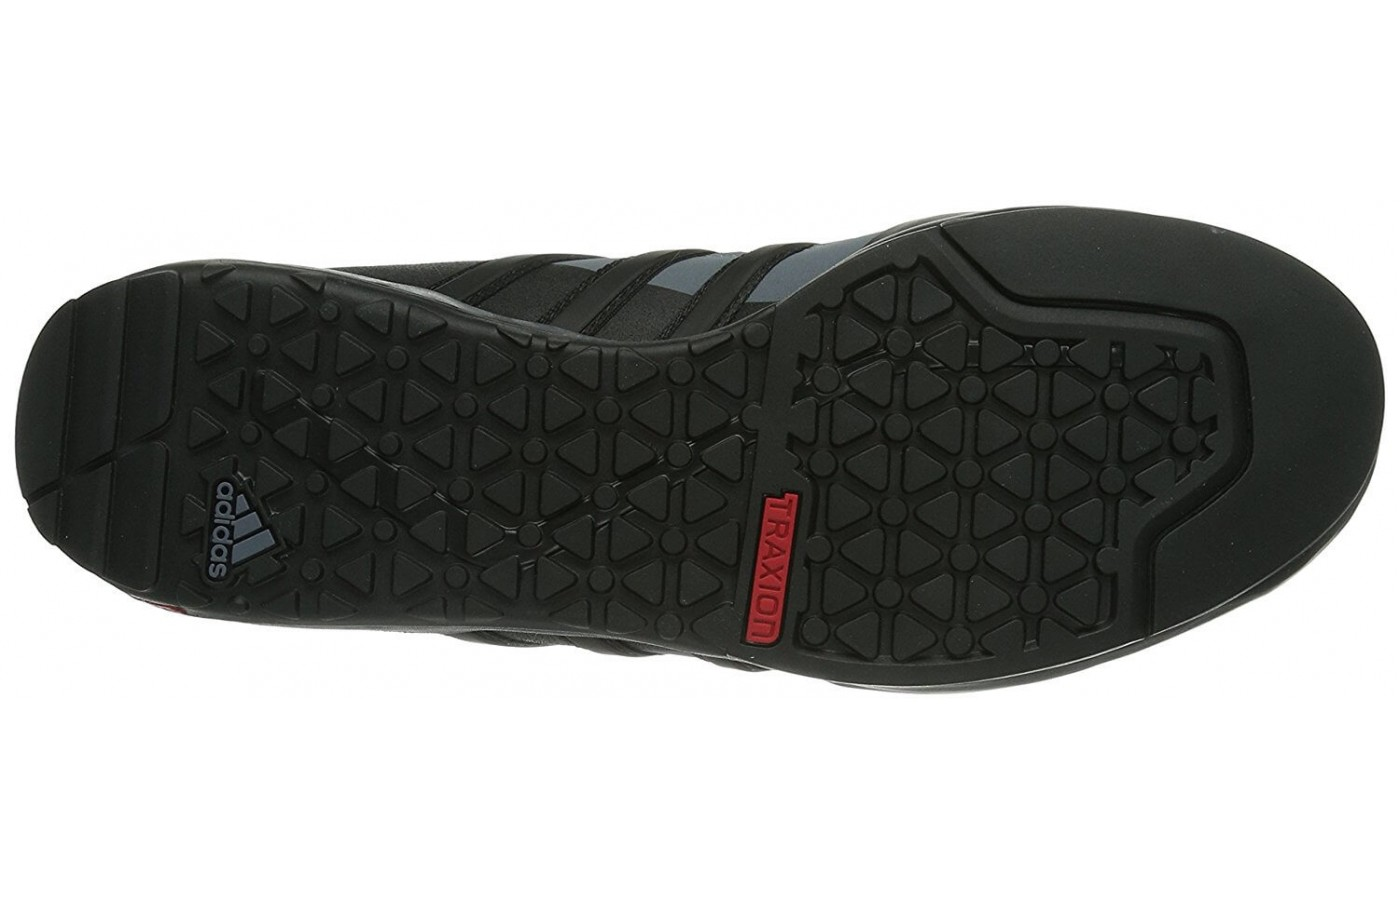 The Traxion and Forefoot stealth rubber add grip and traction.